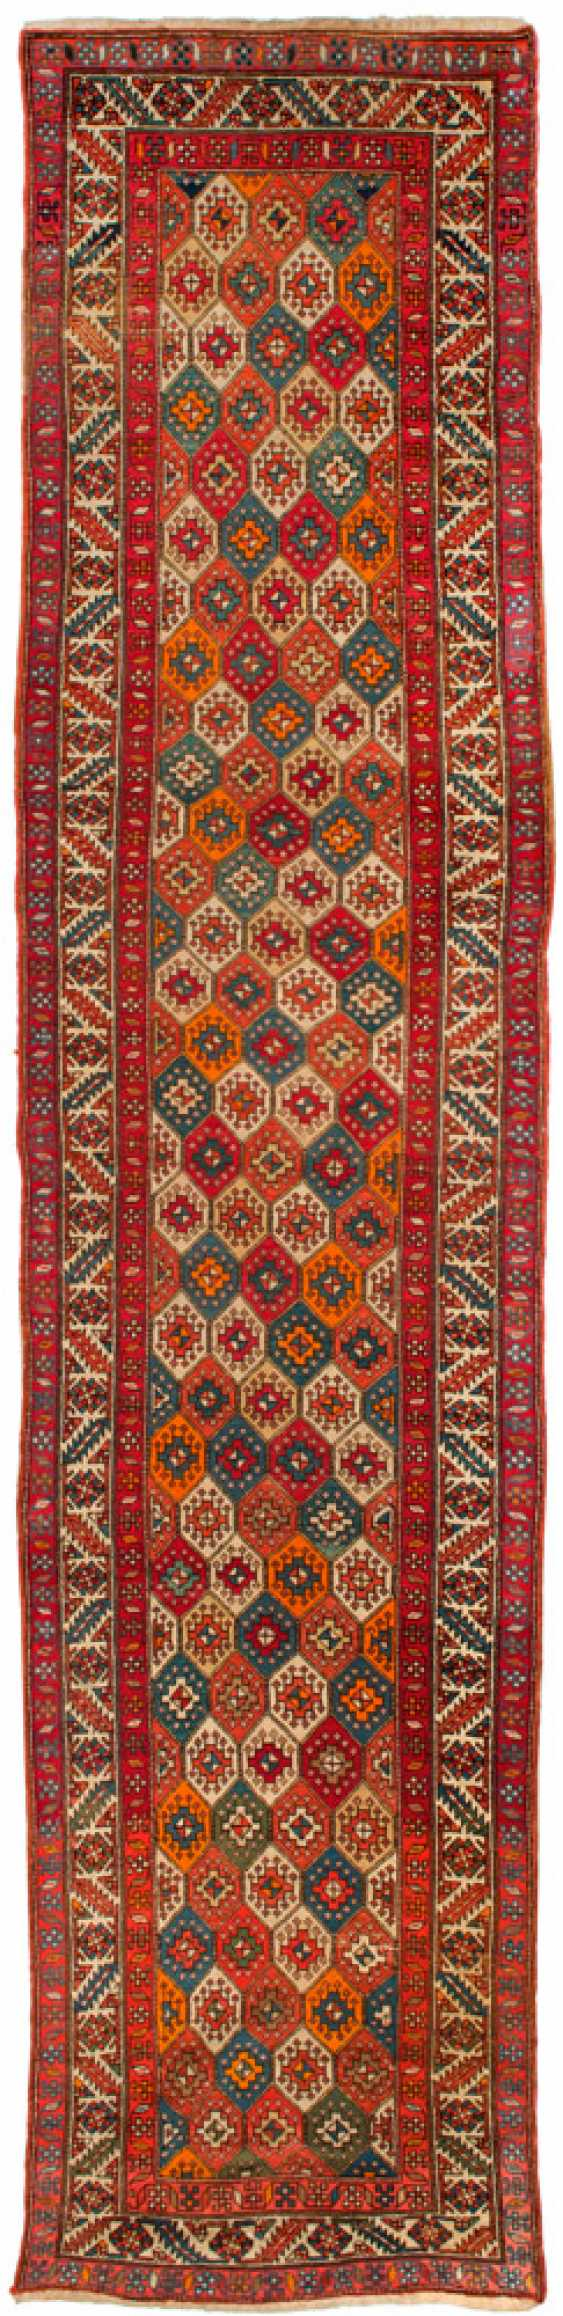 Other Azerbaijanis-Gallery - photo 1